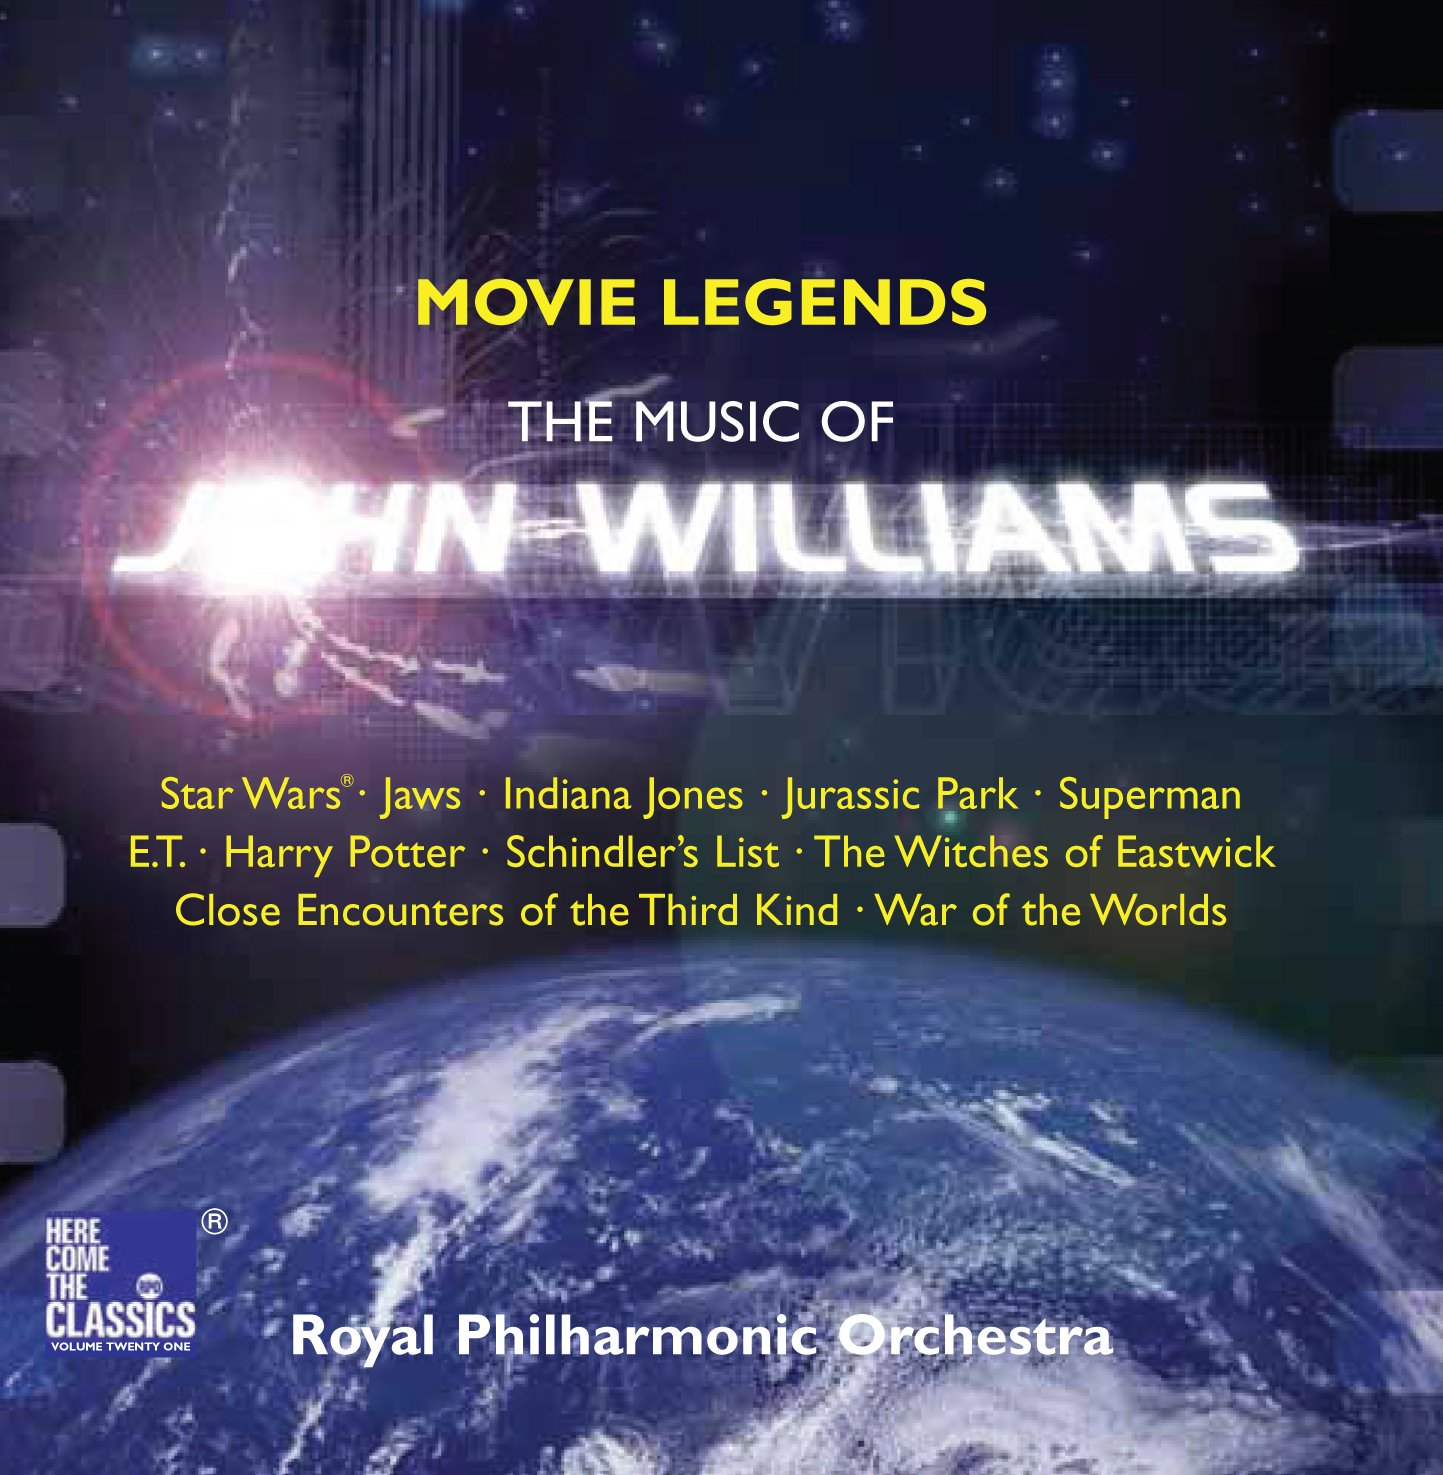 Movie Legends - The Music of John Williams